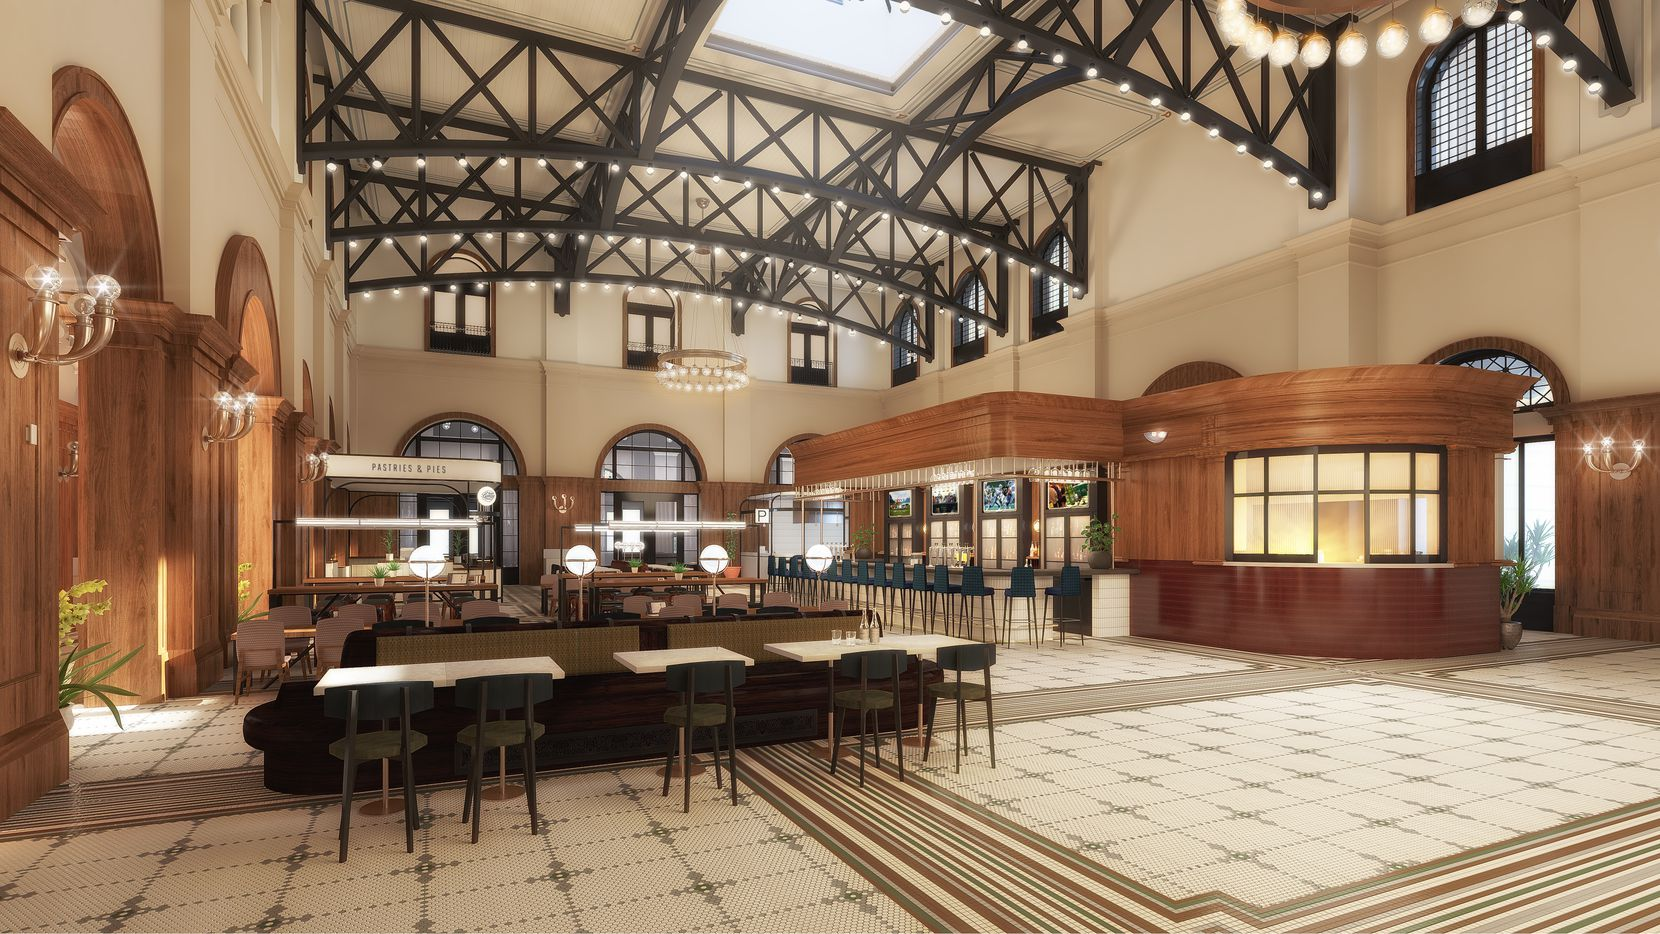 This rendering shows the Hotel Vin's upcoming food hall in Grapevine. Harvest Hall's two larger rooms will have three or four kitchens, where customers will order at the counter and sit at communal seating.